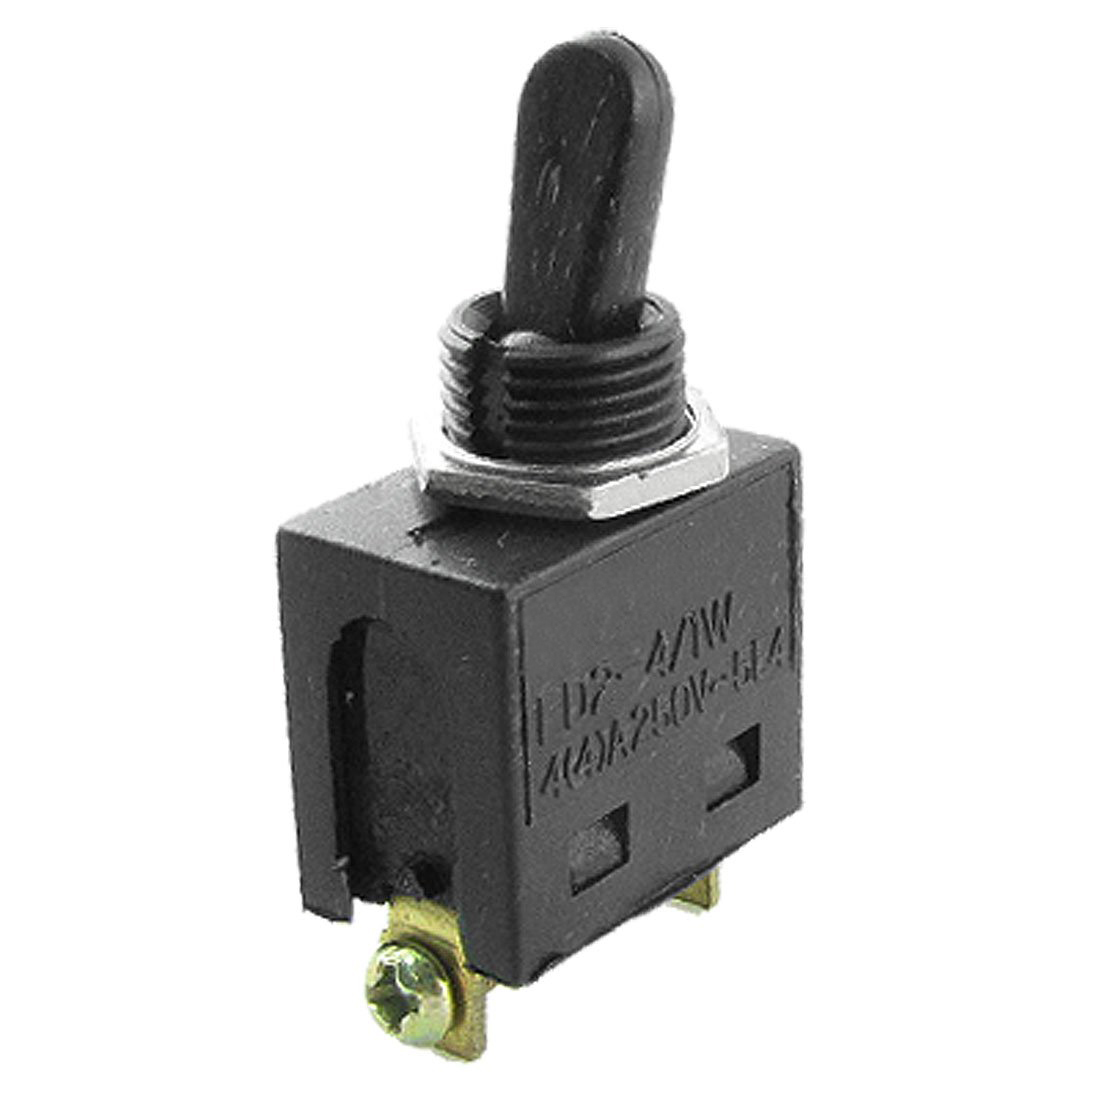 250v On Off Position Toggle Switch For Angle Grinder A73 5pcs Lot Push Button 3a 1 Circuit Non Locking